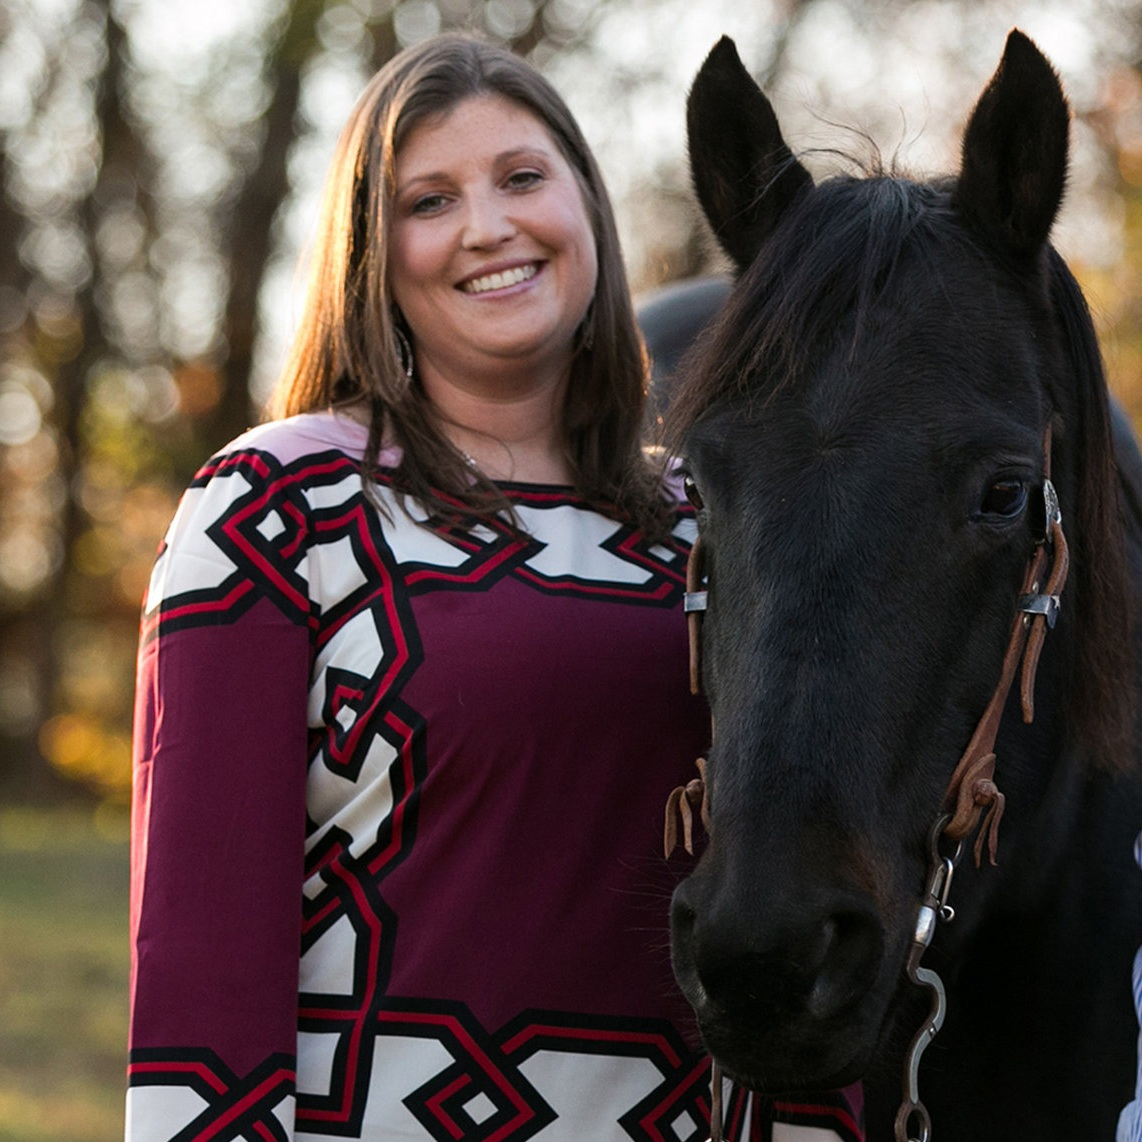 Lauren M. Simon, DDS - Dr. Lauren Simon was raised in Raleigh, NC where she grew up riding and showing horses. She received her Bachelor of Science in Psychology with a minor in Chemistry from the University of Illinois Urbana-Champaign, and her Doctorate of Dental Surgery from Virginia Commonwealth University's Medical College of Virginia. Dr. Simon is licensed in the Commonwealth of Virginia, and is a member of the American Dental Association, Academy of General Dentistry, the Virginia Dental Association, and the Northern Virginia Dental Society.